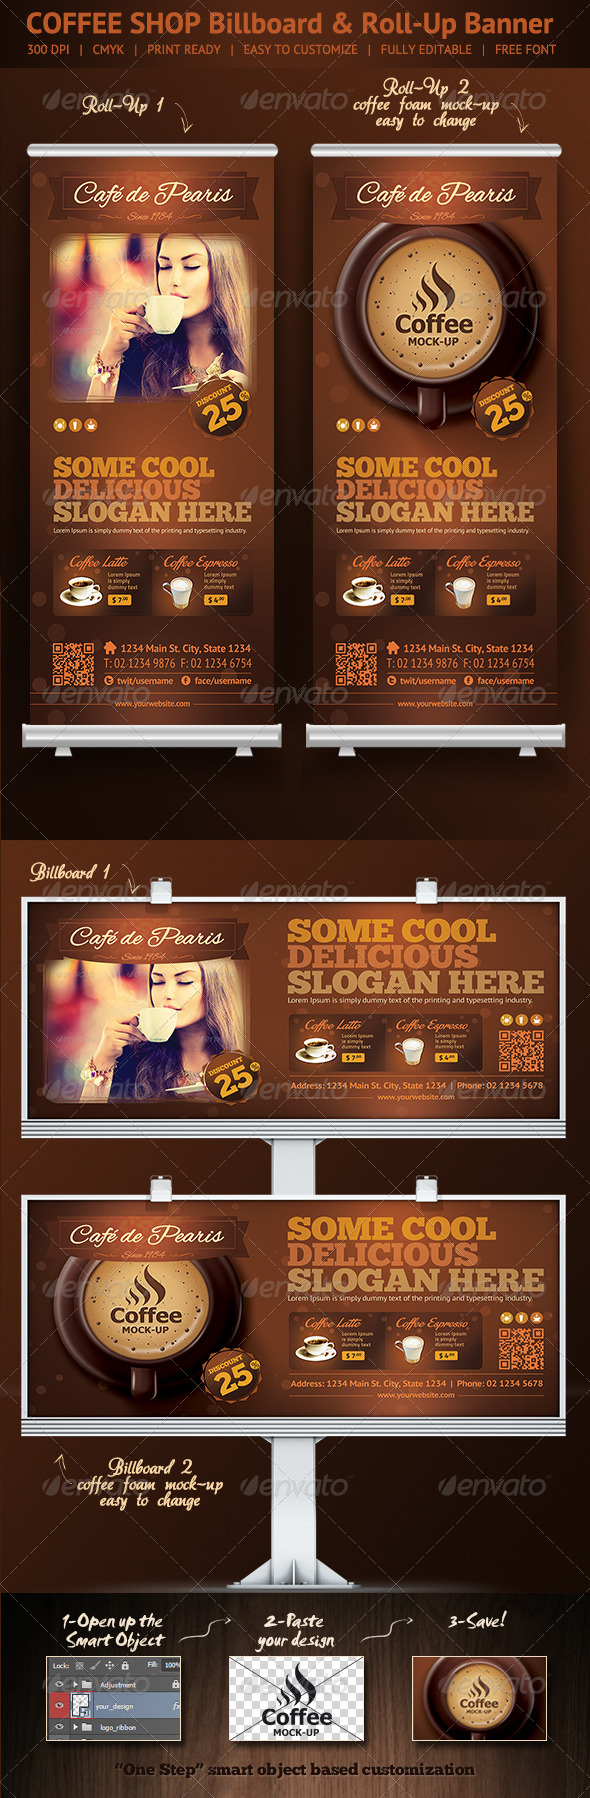 Coffee Shop Roll-Up Banner & Billboard Template - Signage Print Templates